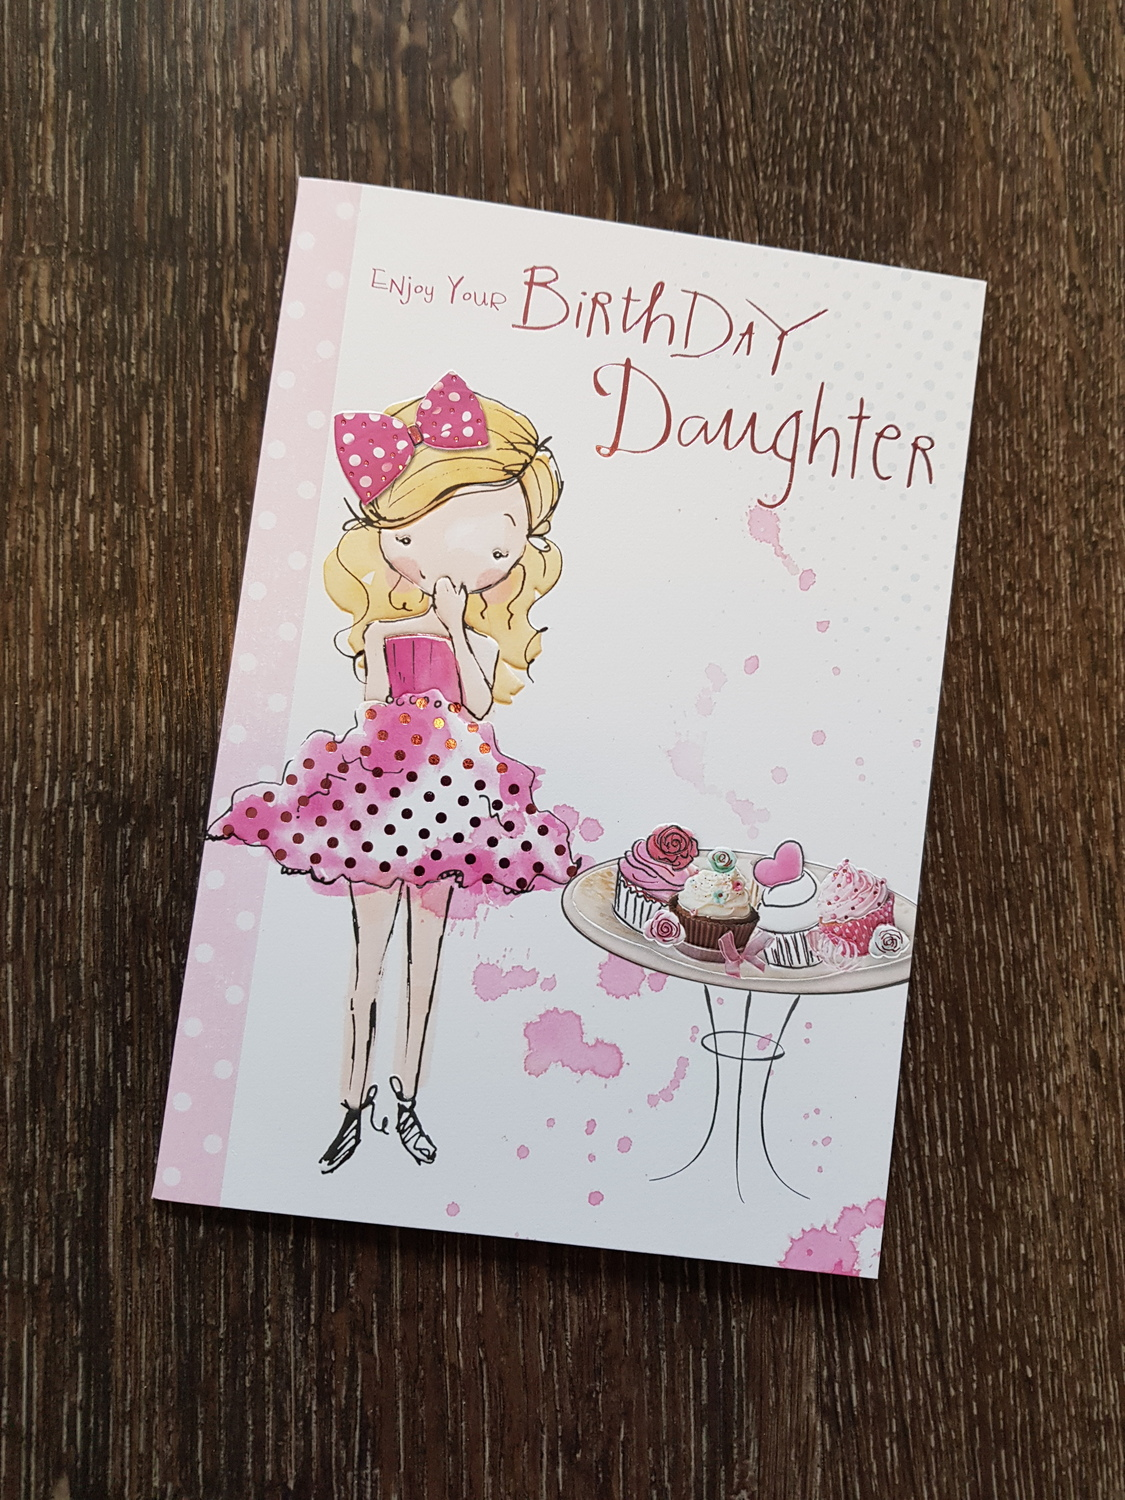 Daughter Birthday Girl Cakes Card